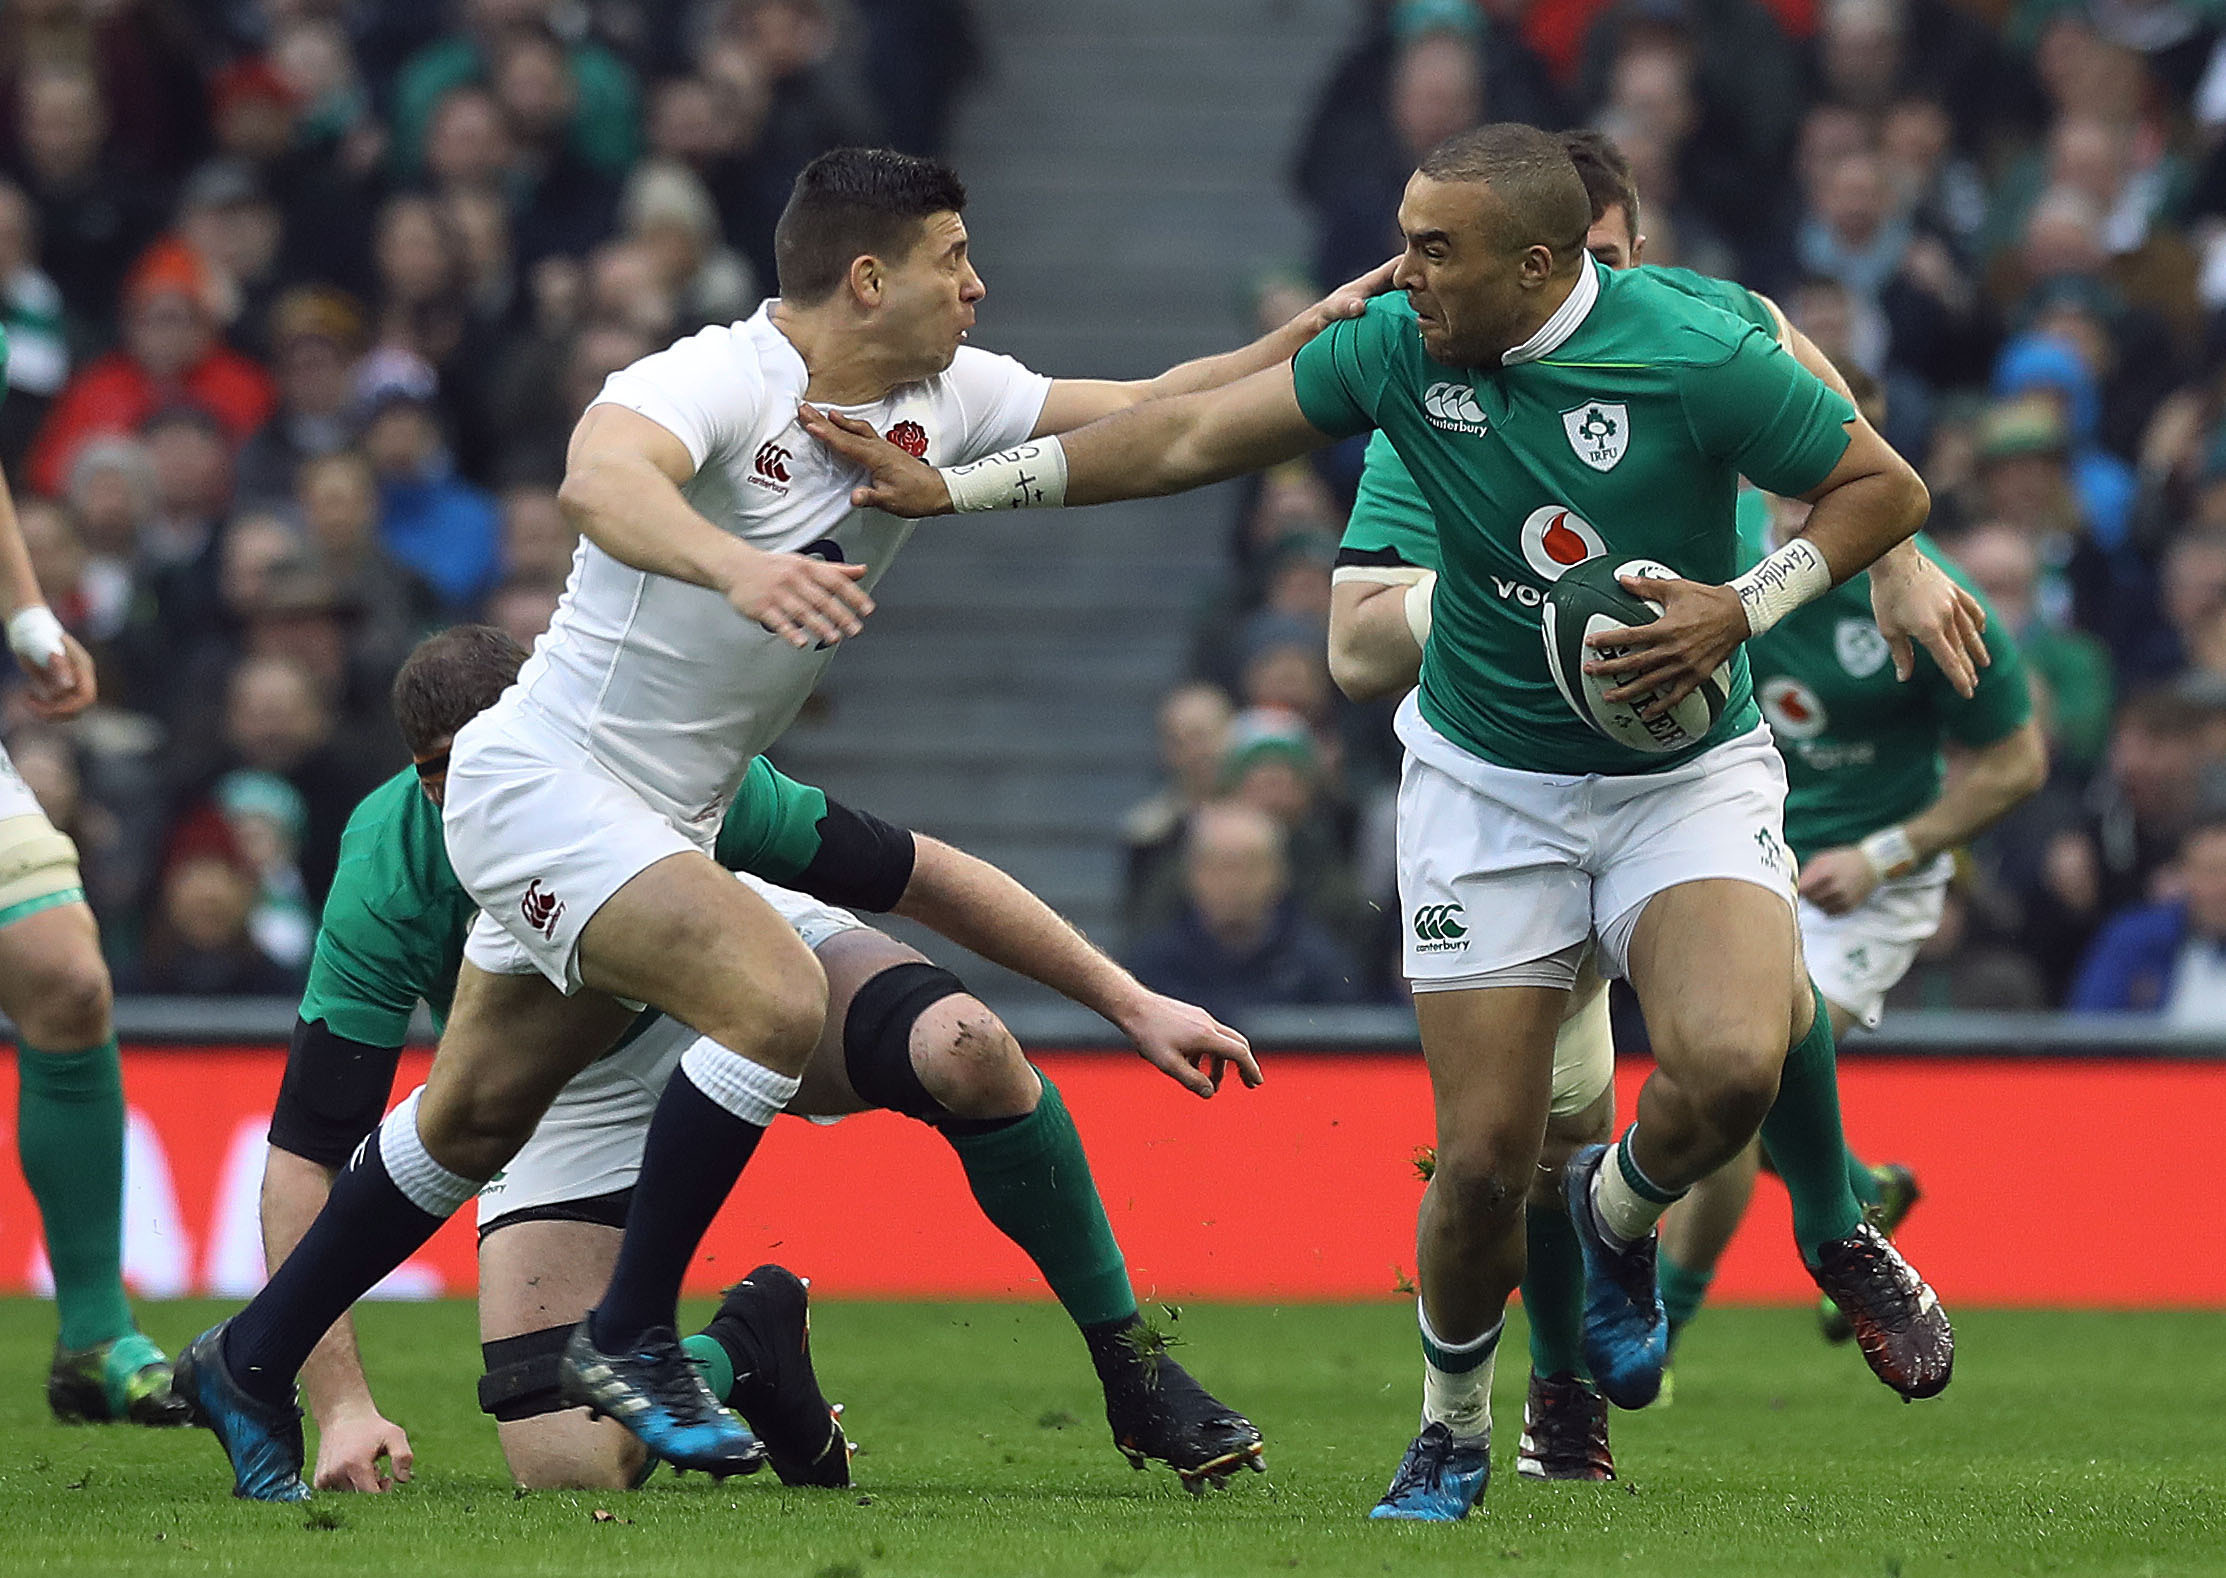 England's Ben Youngs tackles Ireland's Simon Zebo at the Aviva Stadium, Dublin. PRESS ASSOCIATION Photo. Picture date: Saturday March 18, 2017. See PA story RUGBYU Ireland. Photo credit should read: PA Wire. RESTRICTIONS APPLY: Editorial use only.